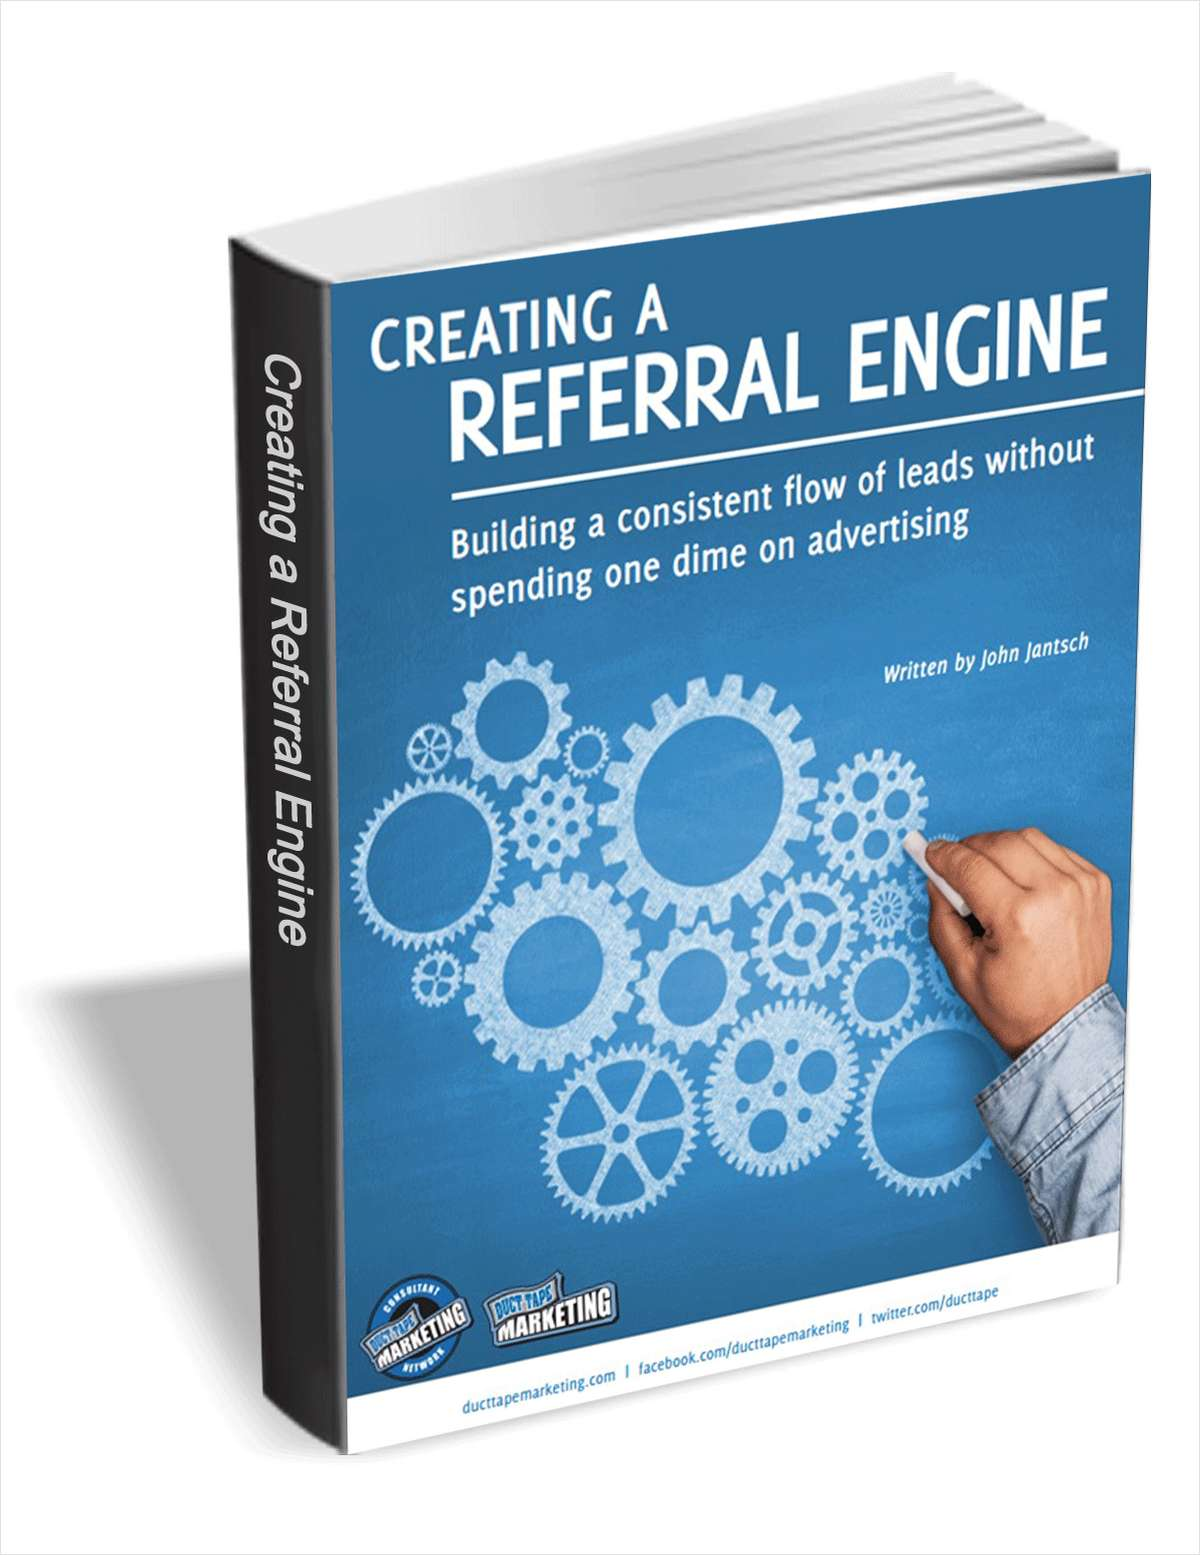 Creating a Referral Engine